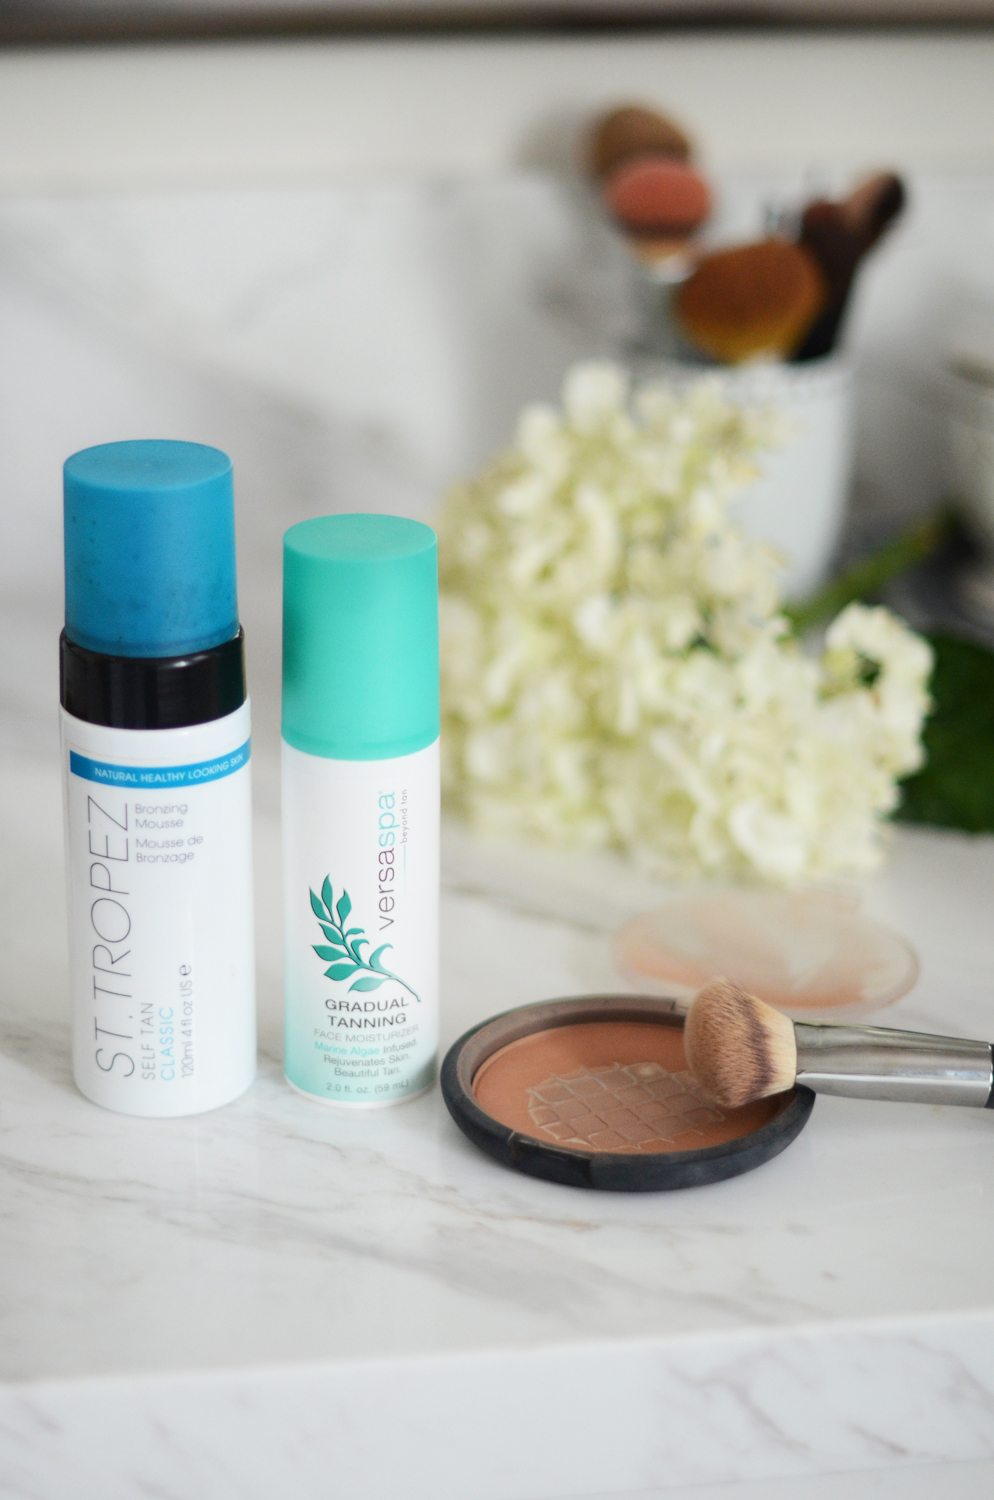 Merrick's Art   3 Amazing Products for Self Tanning